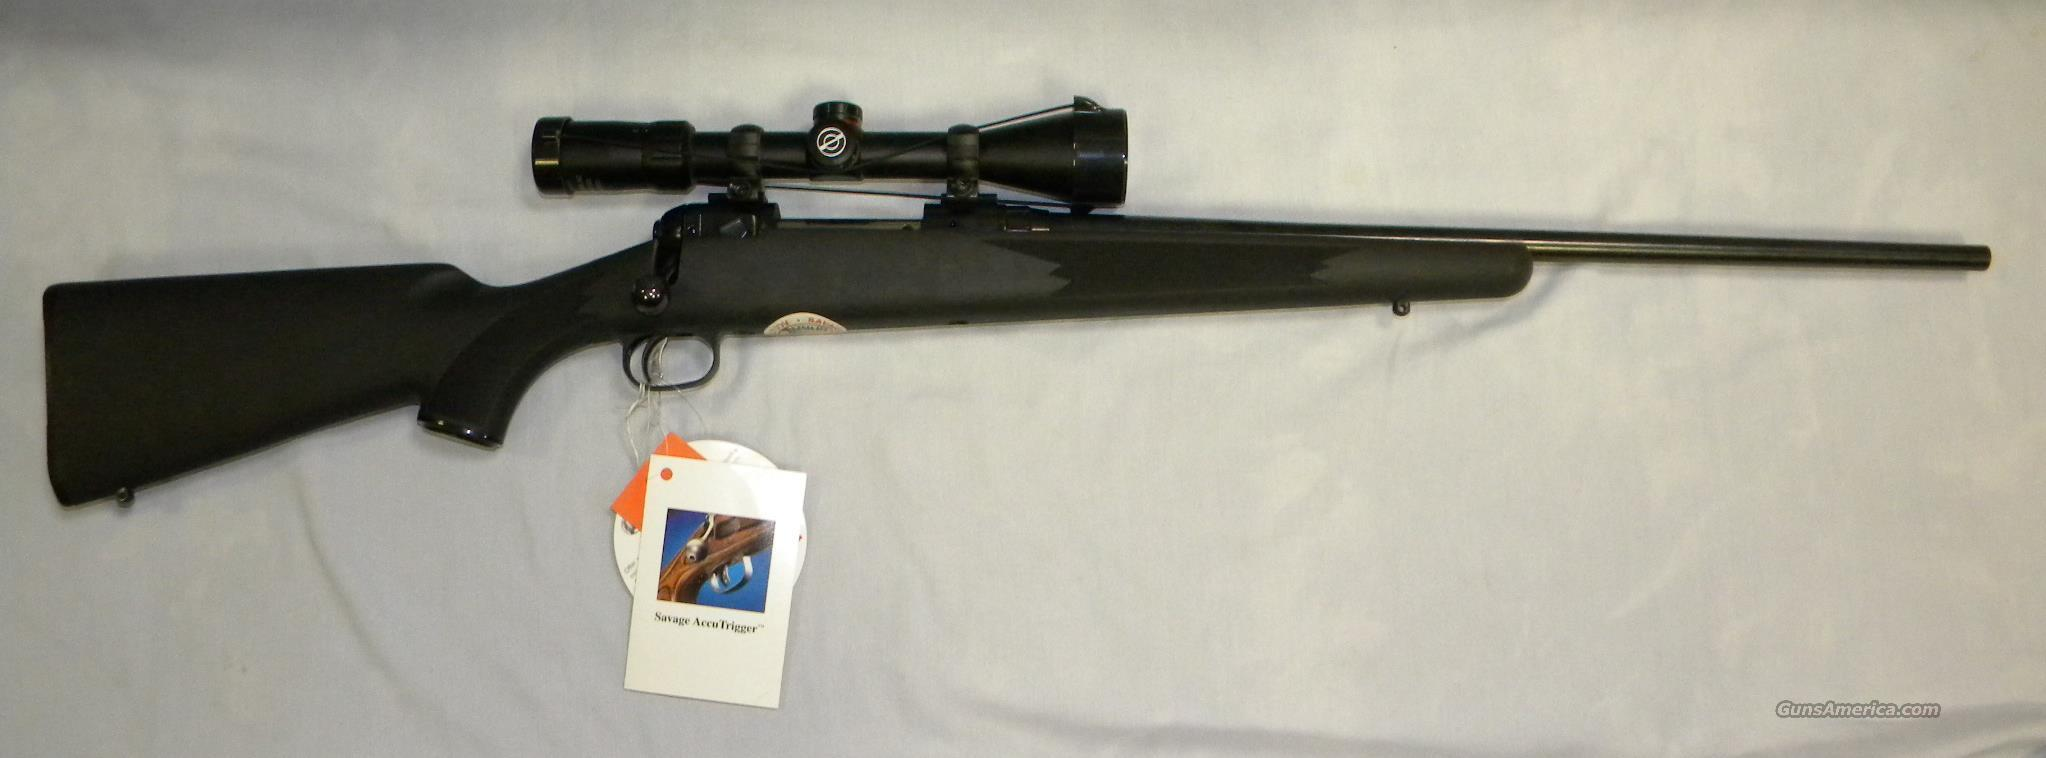 Savage 11 FYXP3, .243 Win Youth Model, w/Factory Scope Pkg  Guns > Rifles > Savage Rifles > Accutrigger Models > Sporting